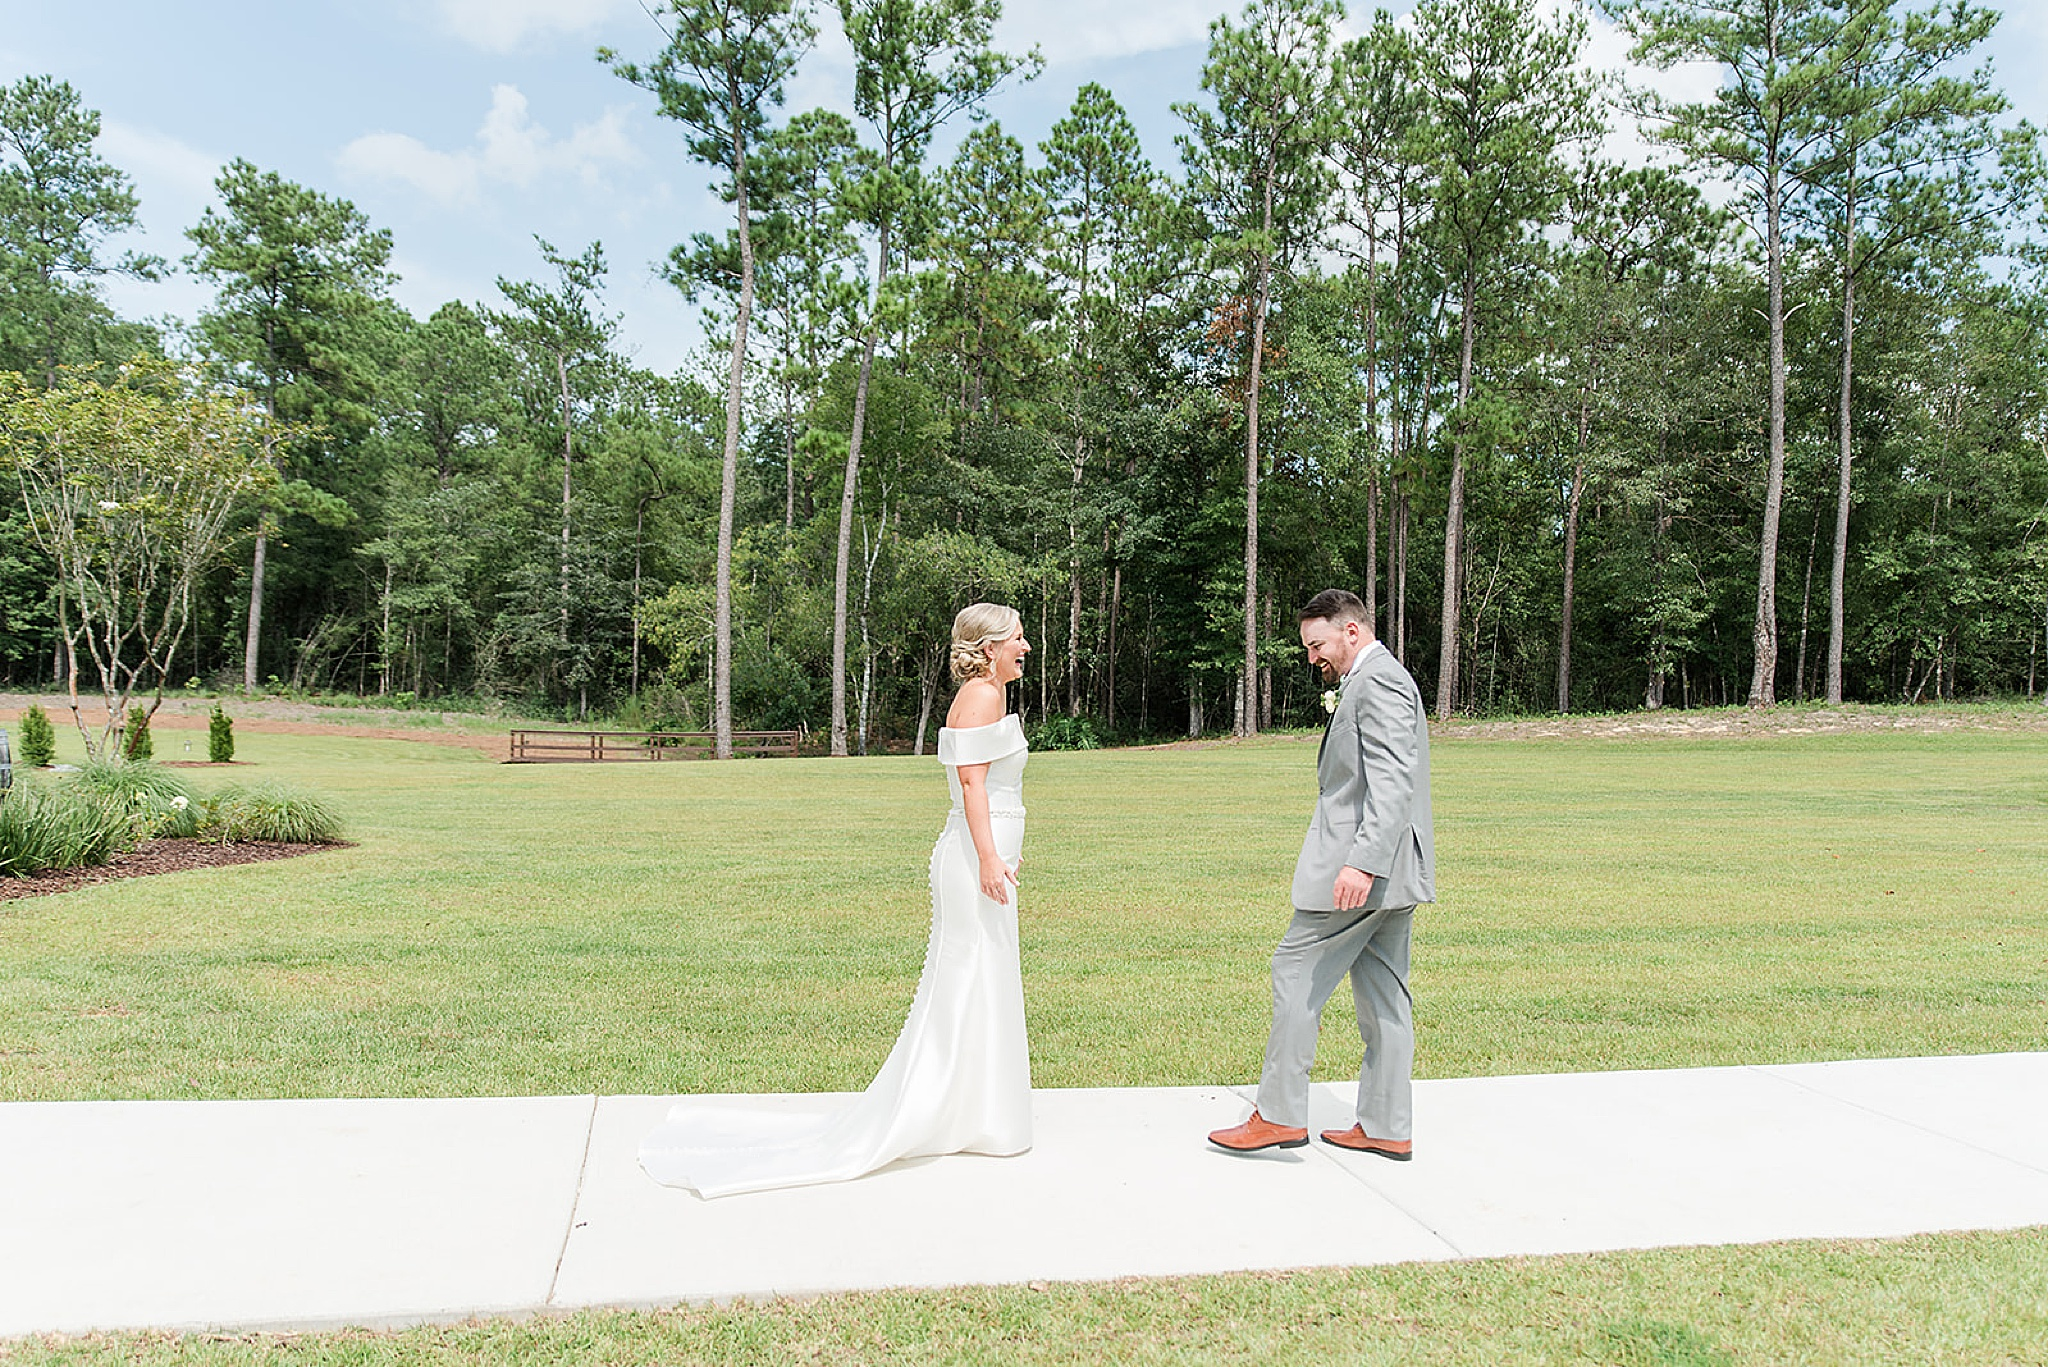 bride and groom's first look on Alabama wedding day